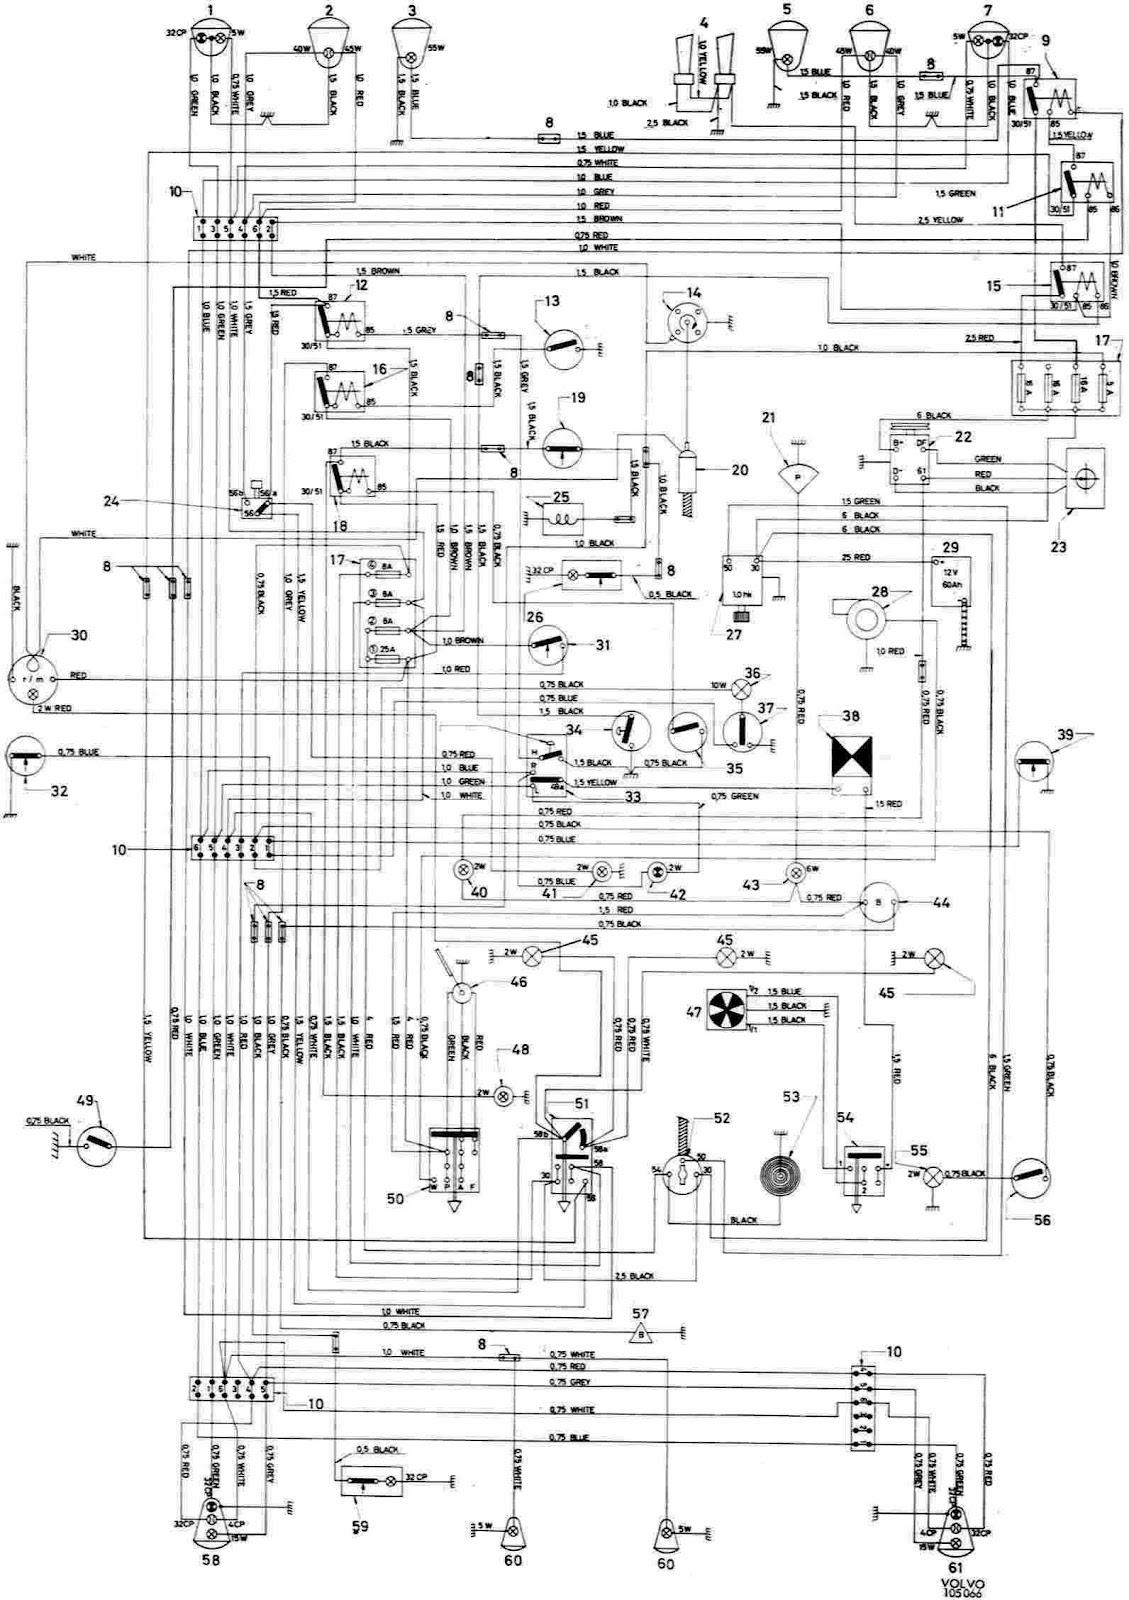 Volvo+123+GT+Complete+Wiring+Diagram 2005 volvo s40 wiring diagram volvo s40 steering diagram \u2022 wiring volvo truck radio wiring diagram at nearapp.co